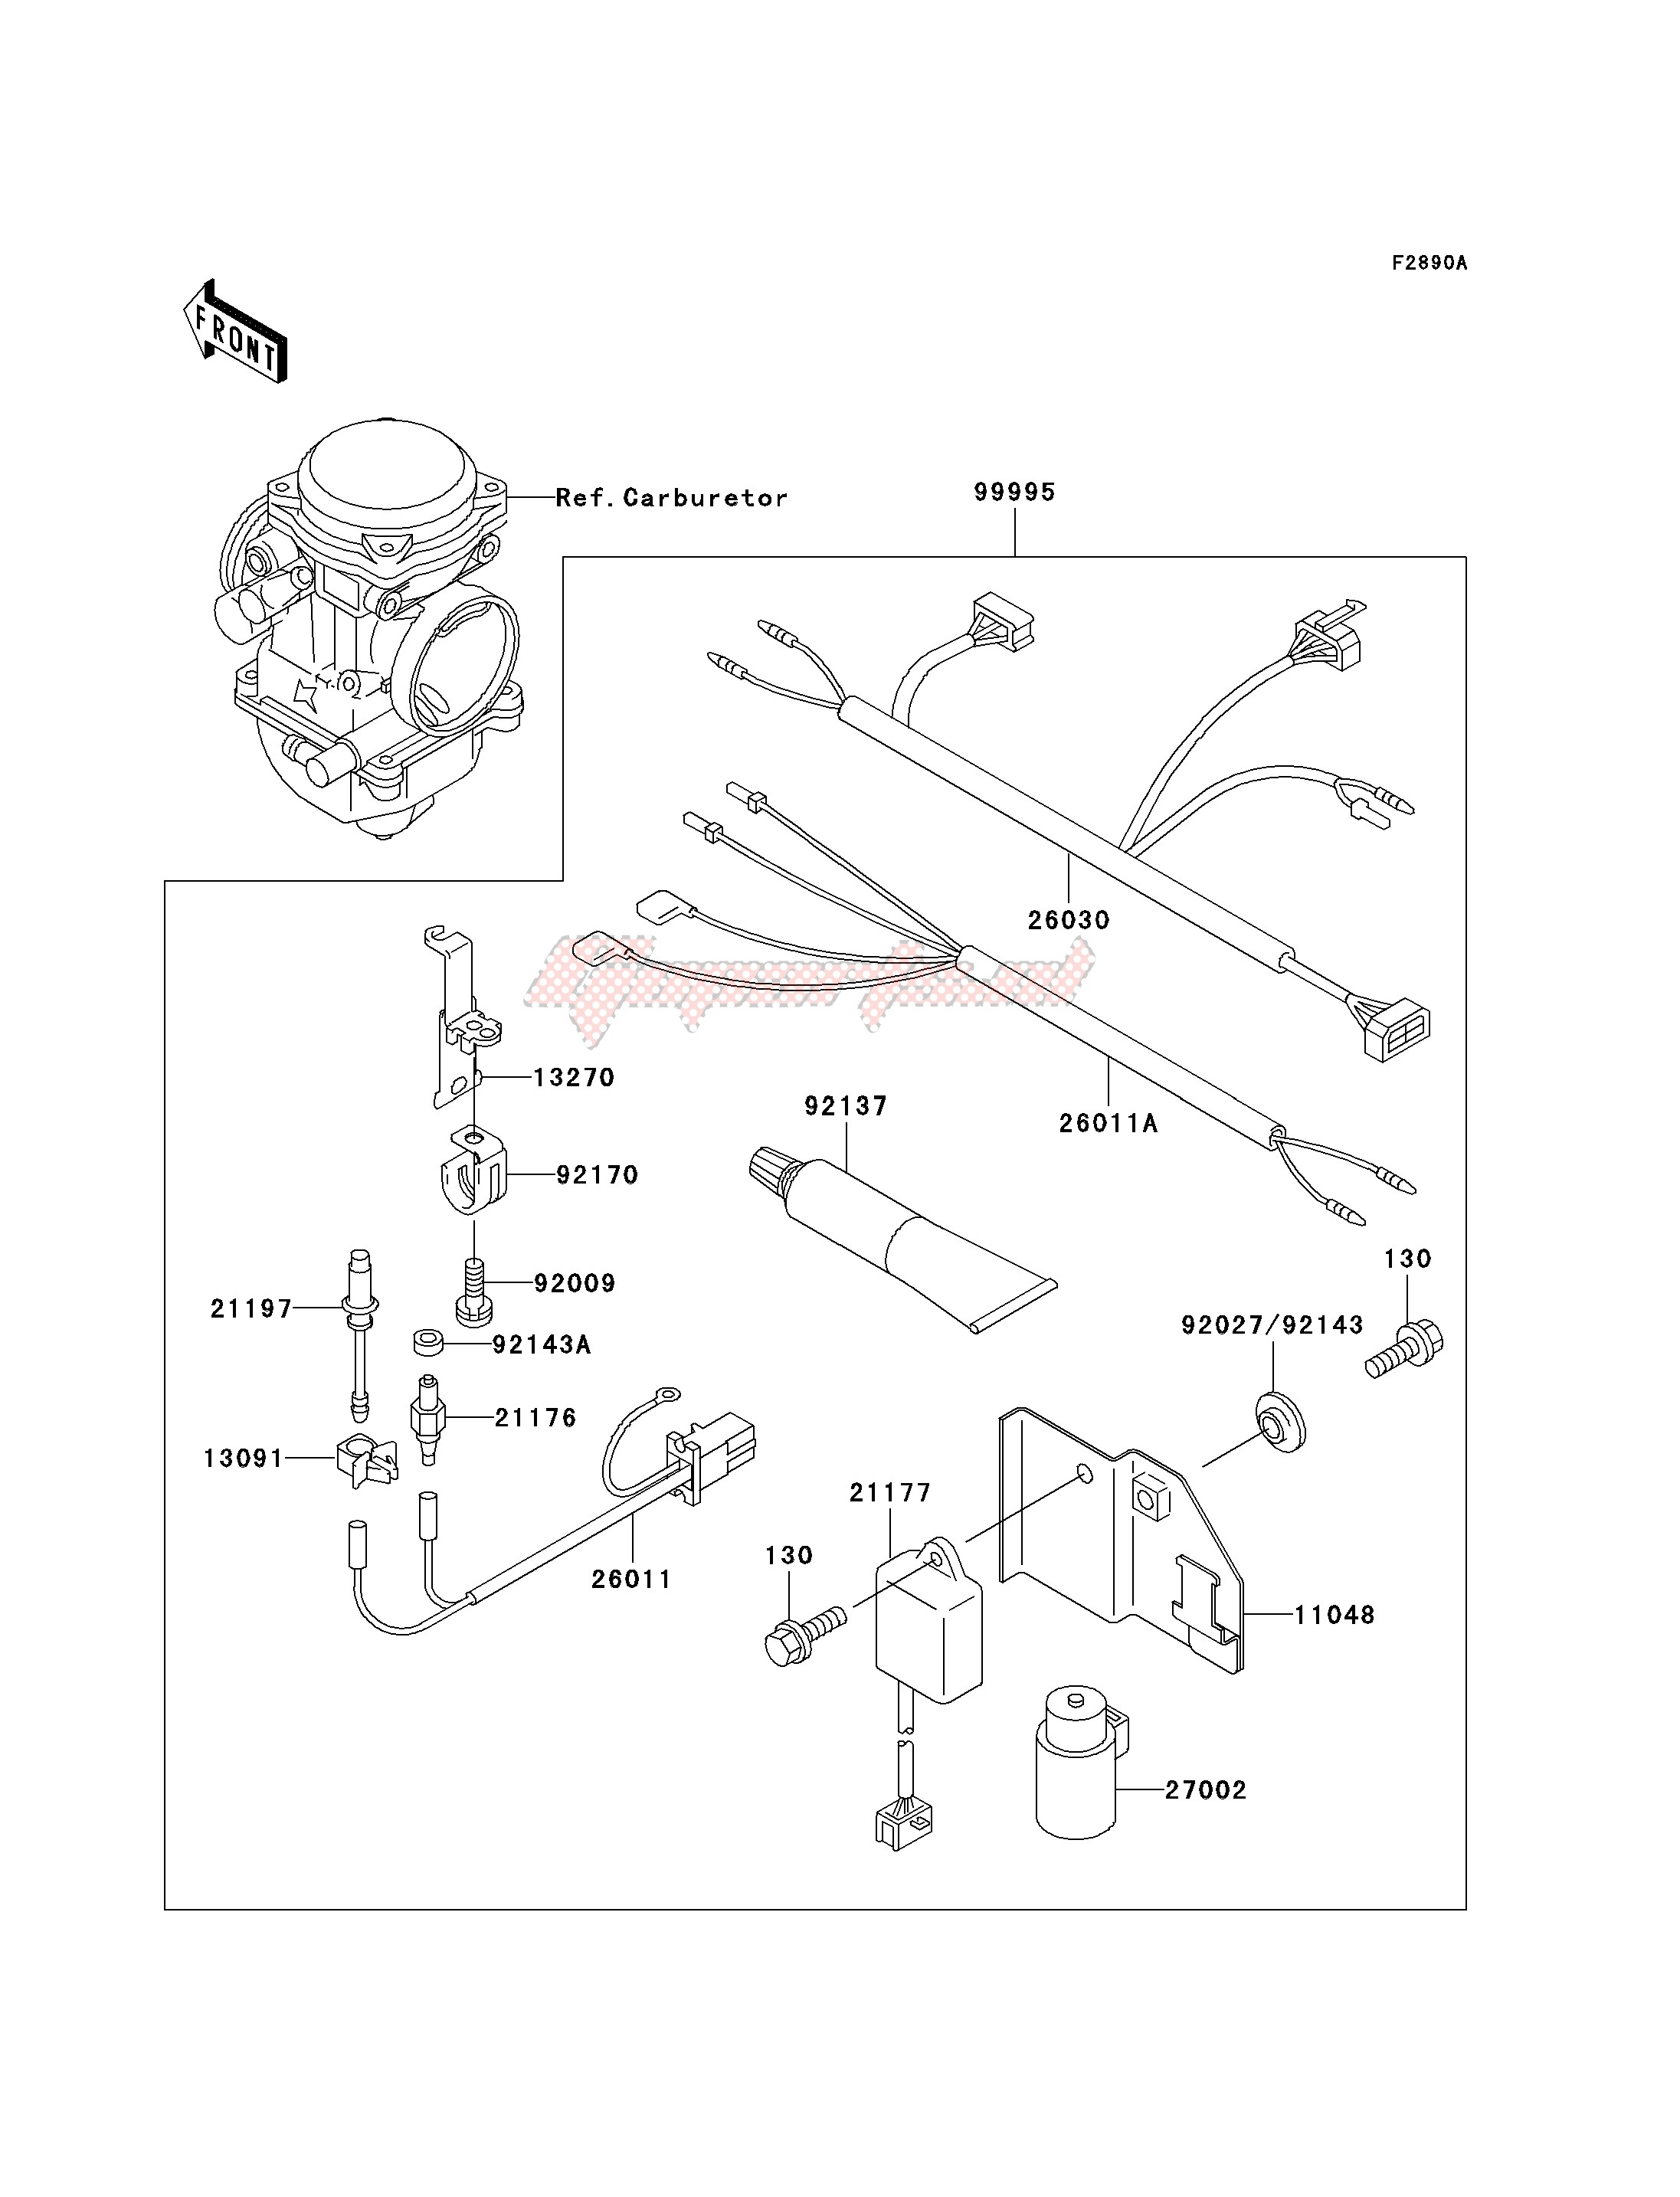 Accessories-OPTIONAL PARTS-- CARBURETOR- -